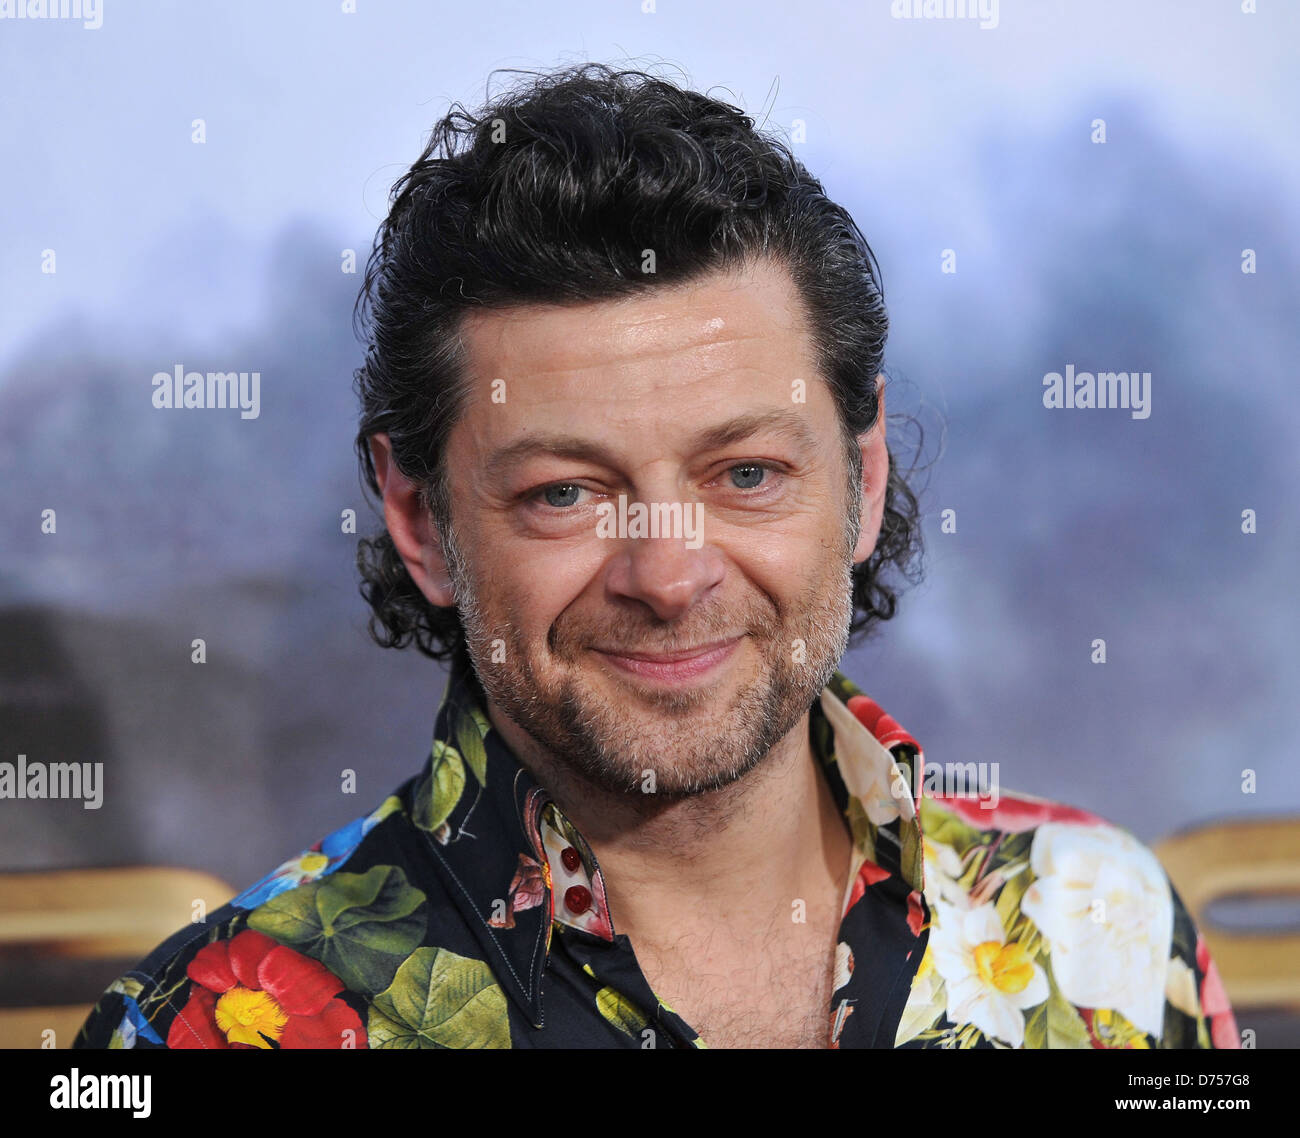 Andy Serkis 'Cowboys and Aliens' Premiere at Civic Theater - Arrivals San Diego, California - 23.07.11 - Stock Image